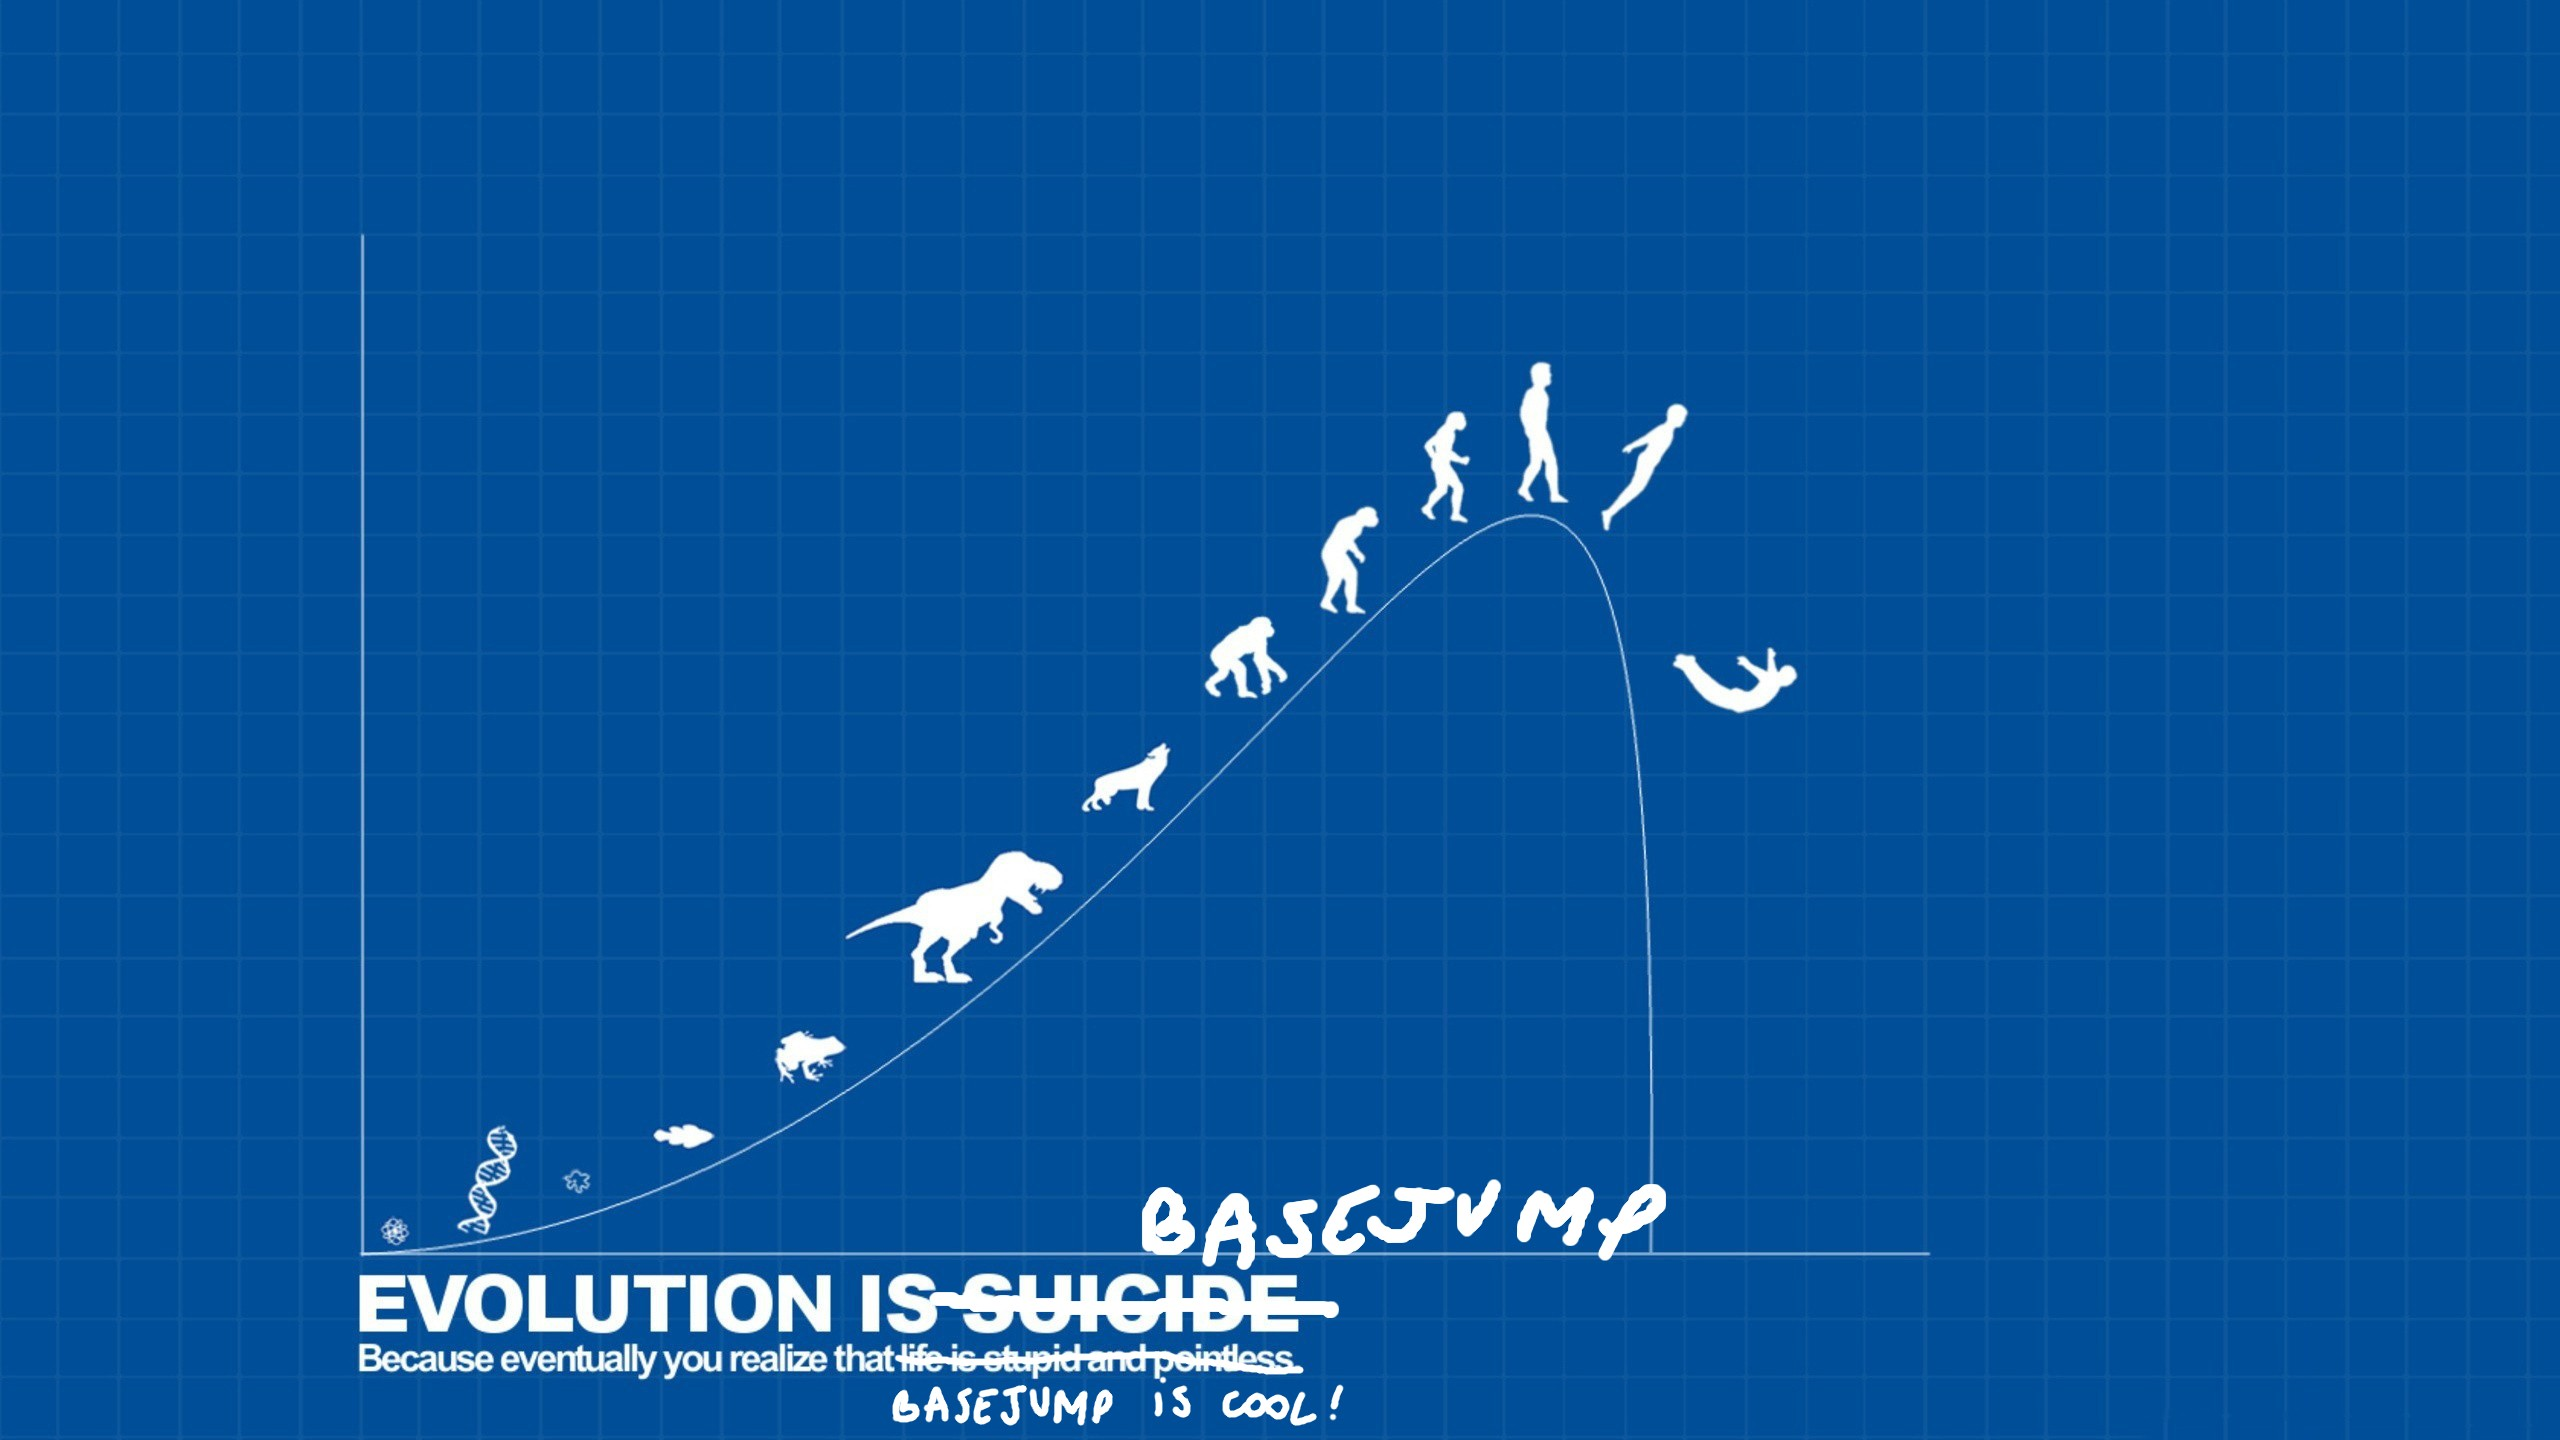 BASE Jumping evolution suicide